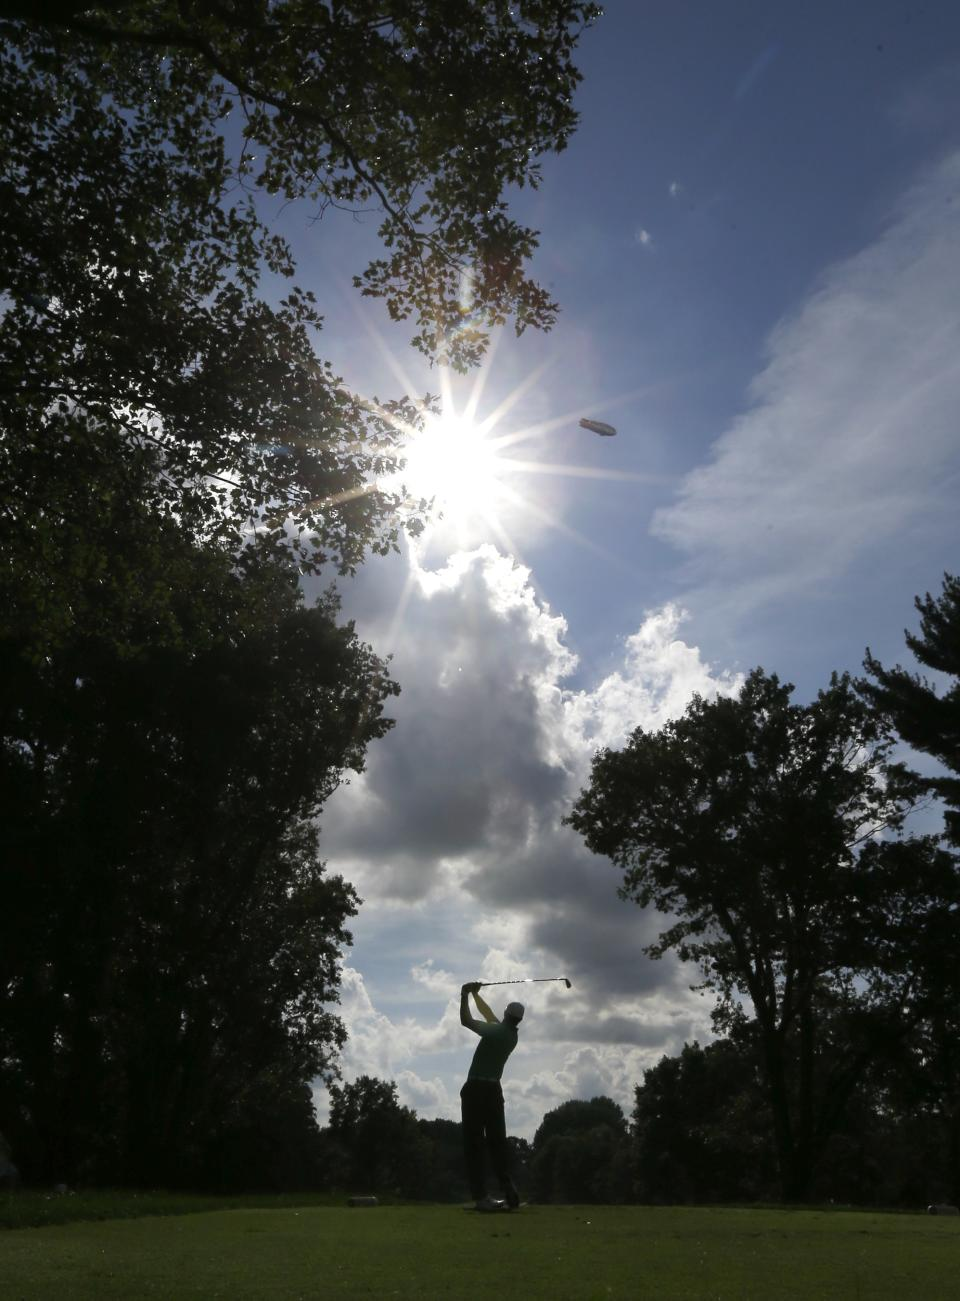 Tiger Woods watches his tee shot on the 13th hole during the second round of the PGA Championship golf tournament at Oak Hill Country Club, Friday, Aug. 9, 2013, in Pittsford, N.Y. (AP Photo/Julio Cortez)